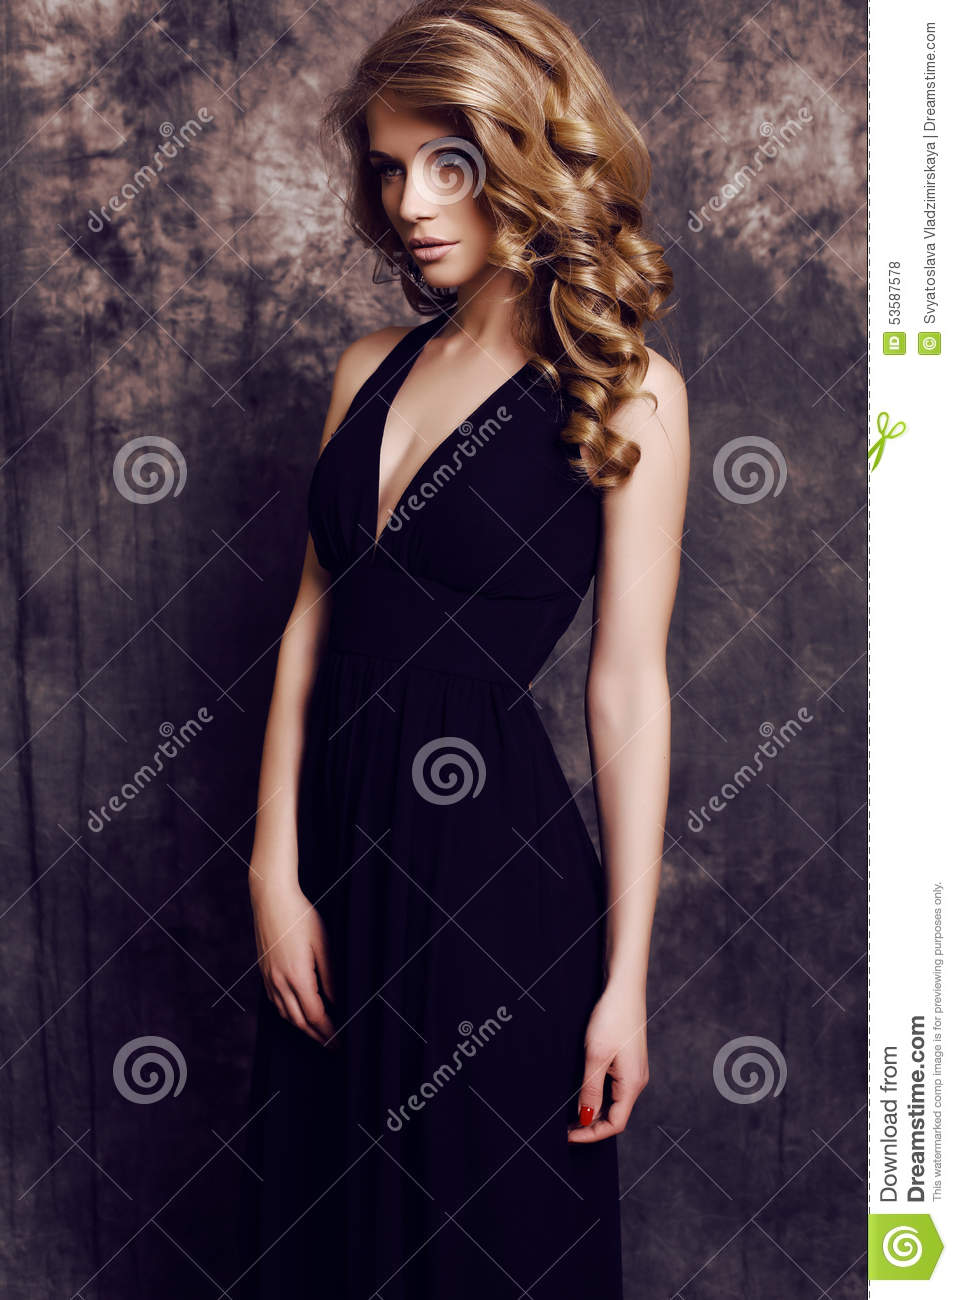 Black dress hairstyle - Girl With Blond Curly Hair Wearing Elegant Black Dress